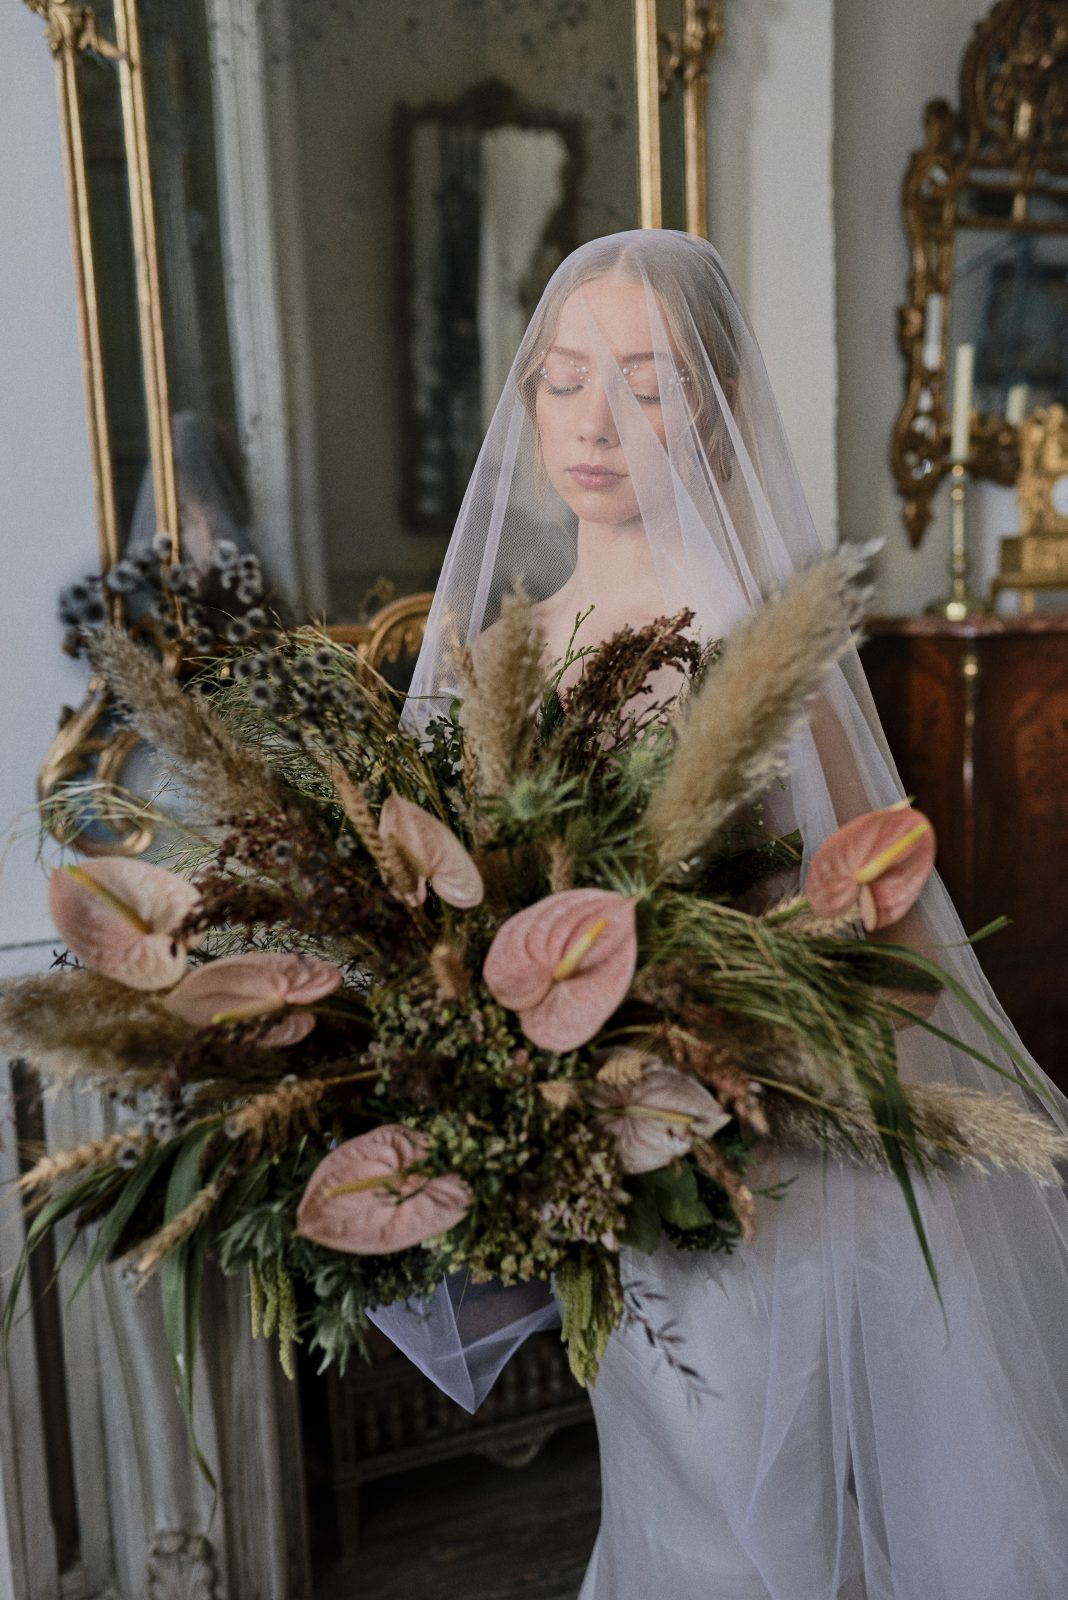 Swan Lake inspired bride with pearl veil and statement bouquet